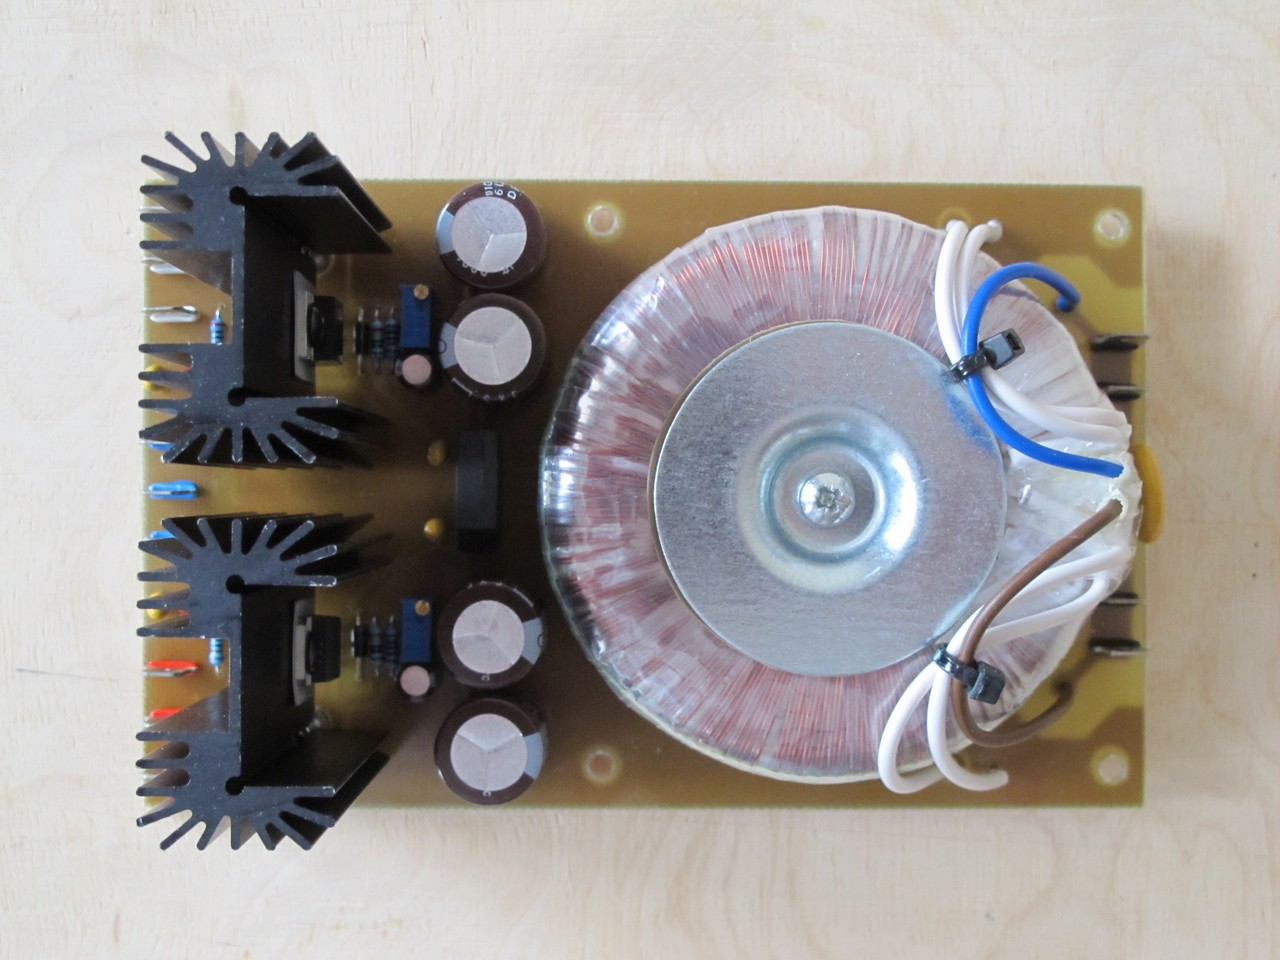 Modular synth PSU top view